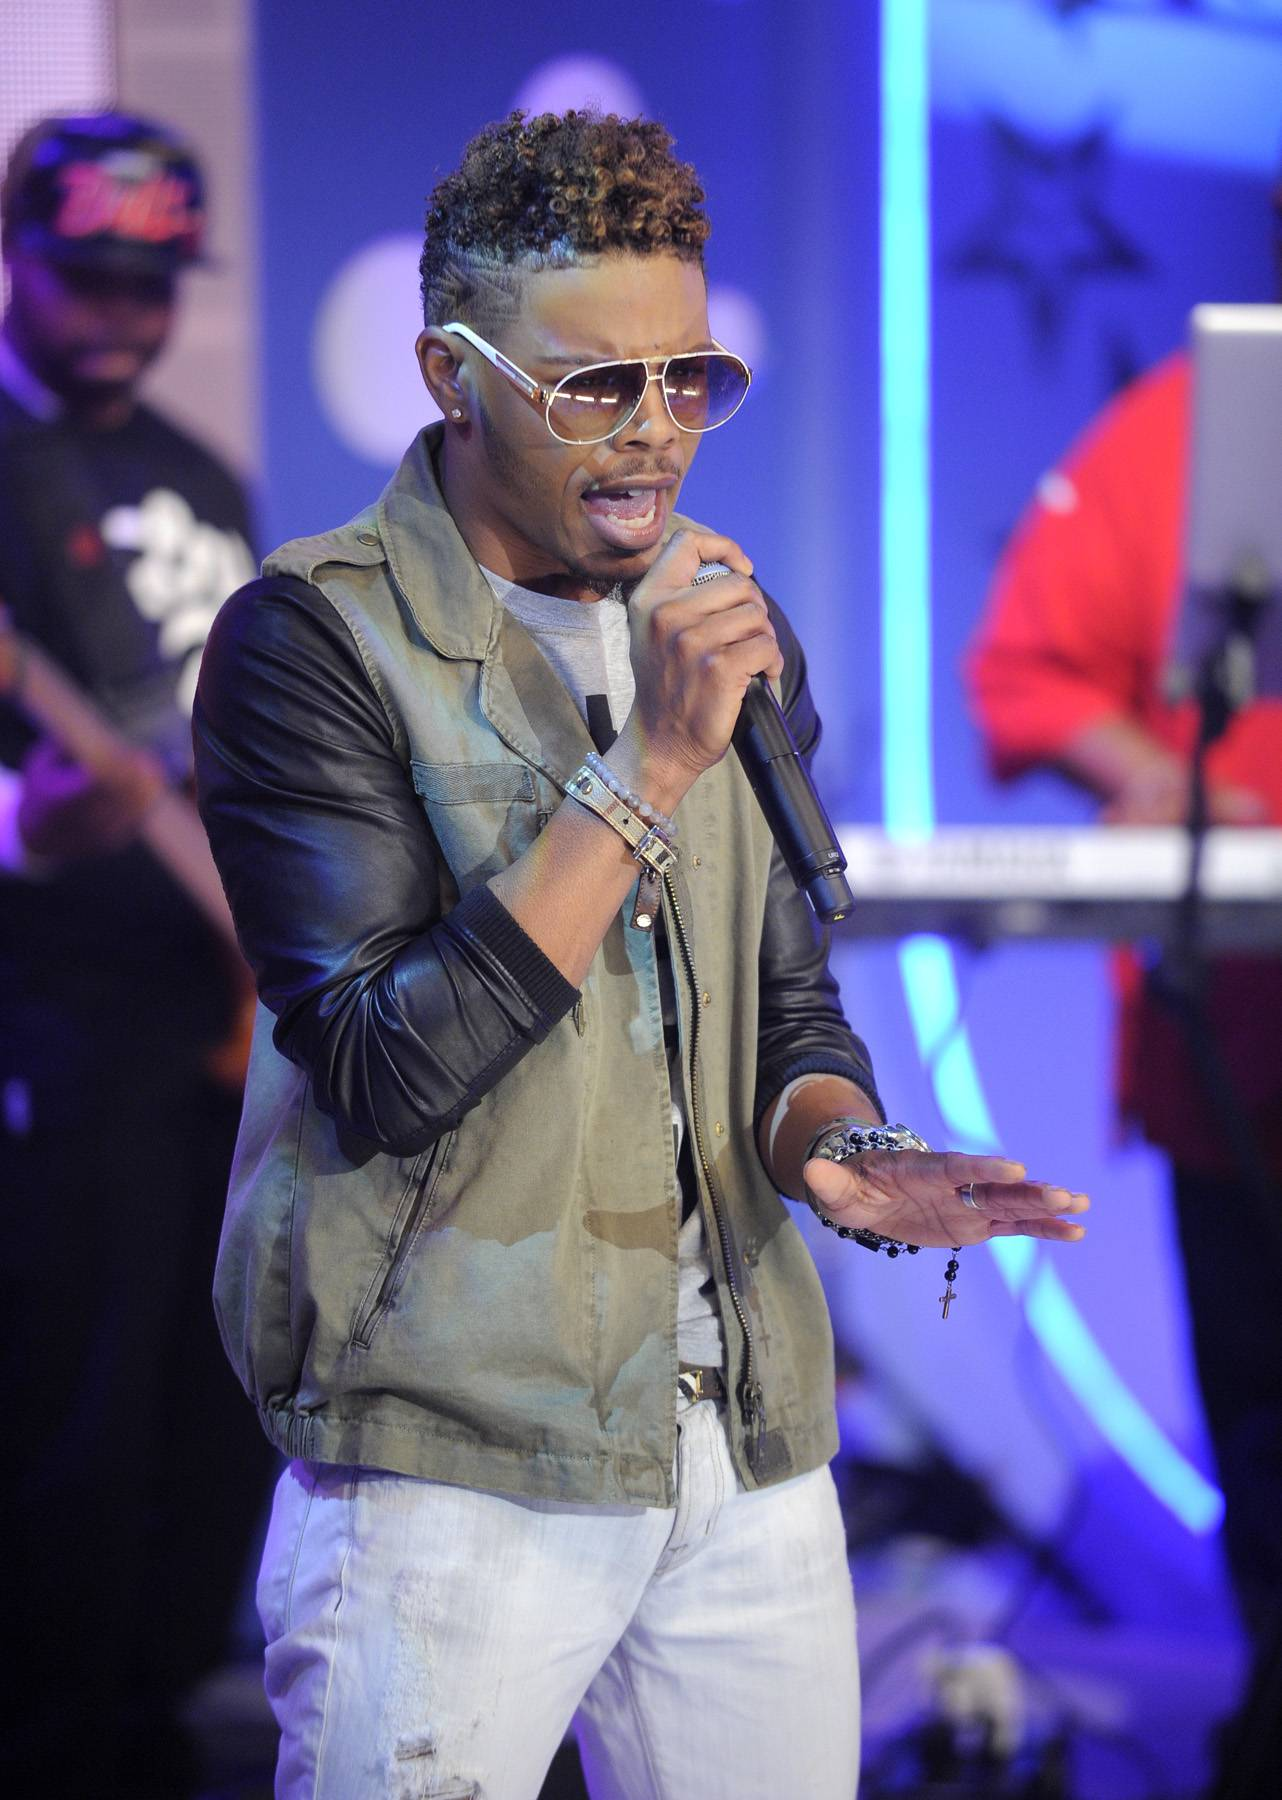 Nice Hair Eric Mayo - Wild Out Wednesday competitor Eric Mayo at 106 & Park, May 2, 2012.(Photo: John Ricard/BET)